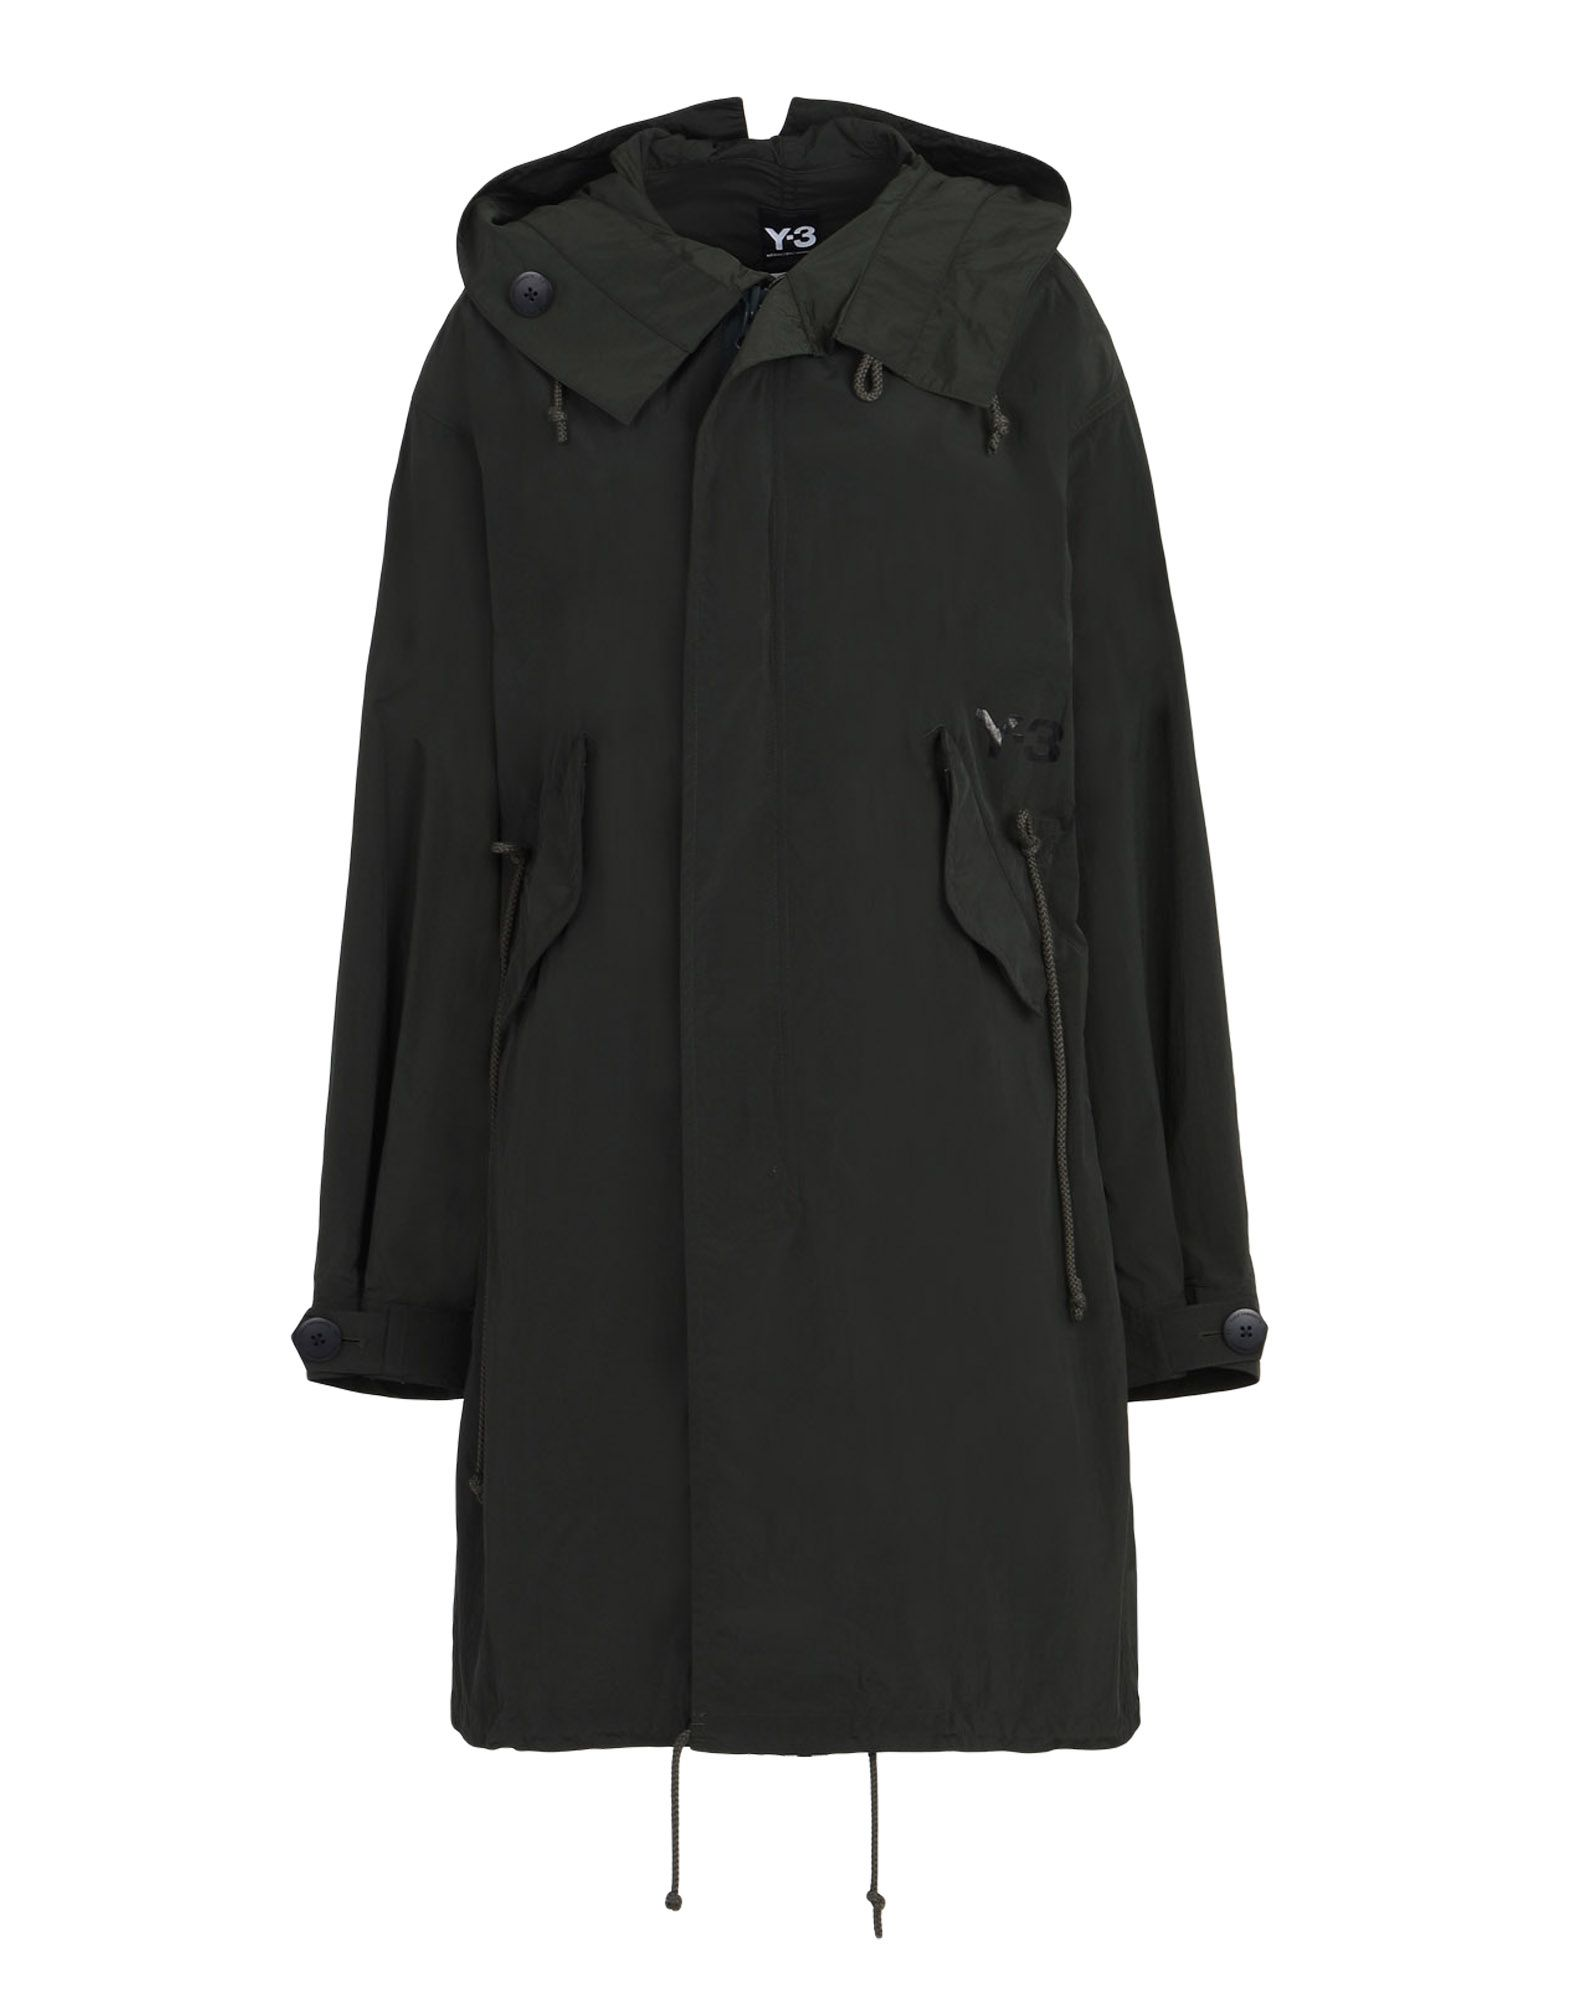 Y 3 PARKA Dark Green for Women | Adidas Y-3 Official Store